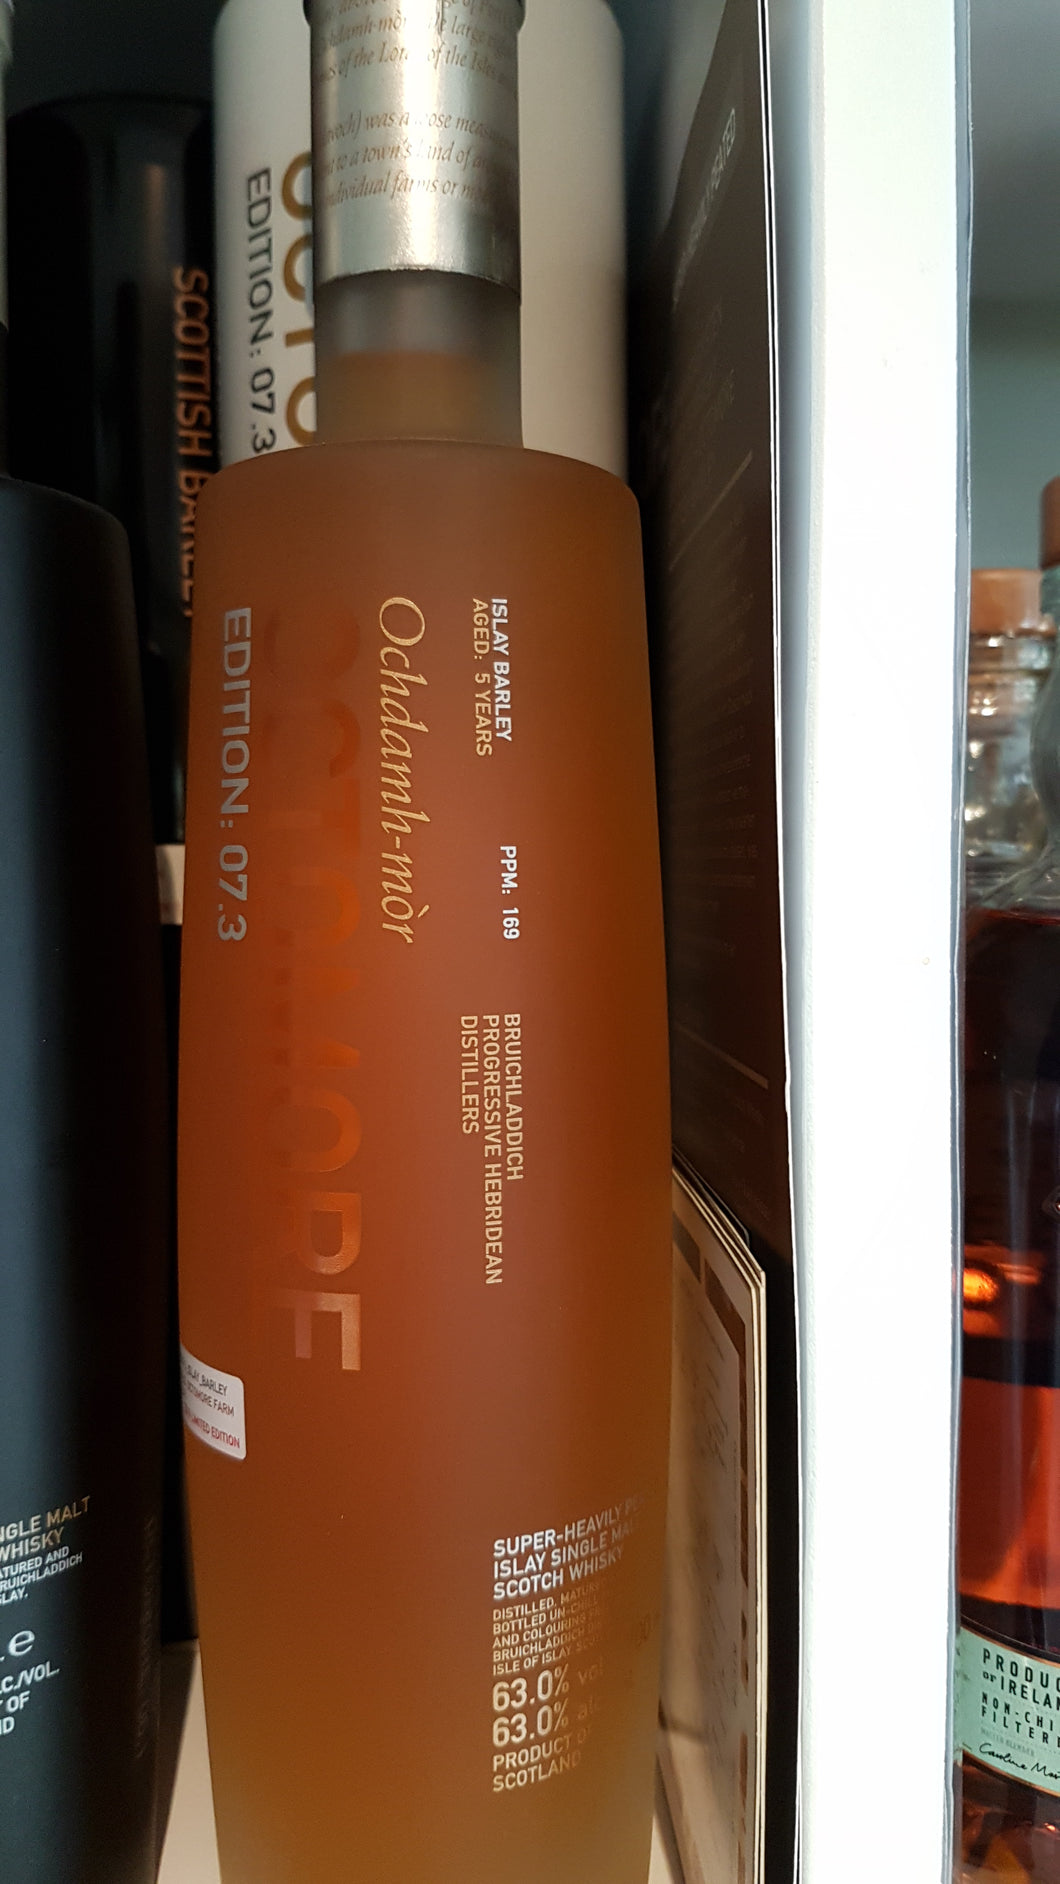 Octomore bruichladdich 07.3 Whisky 0.7 63% inn-out-shop